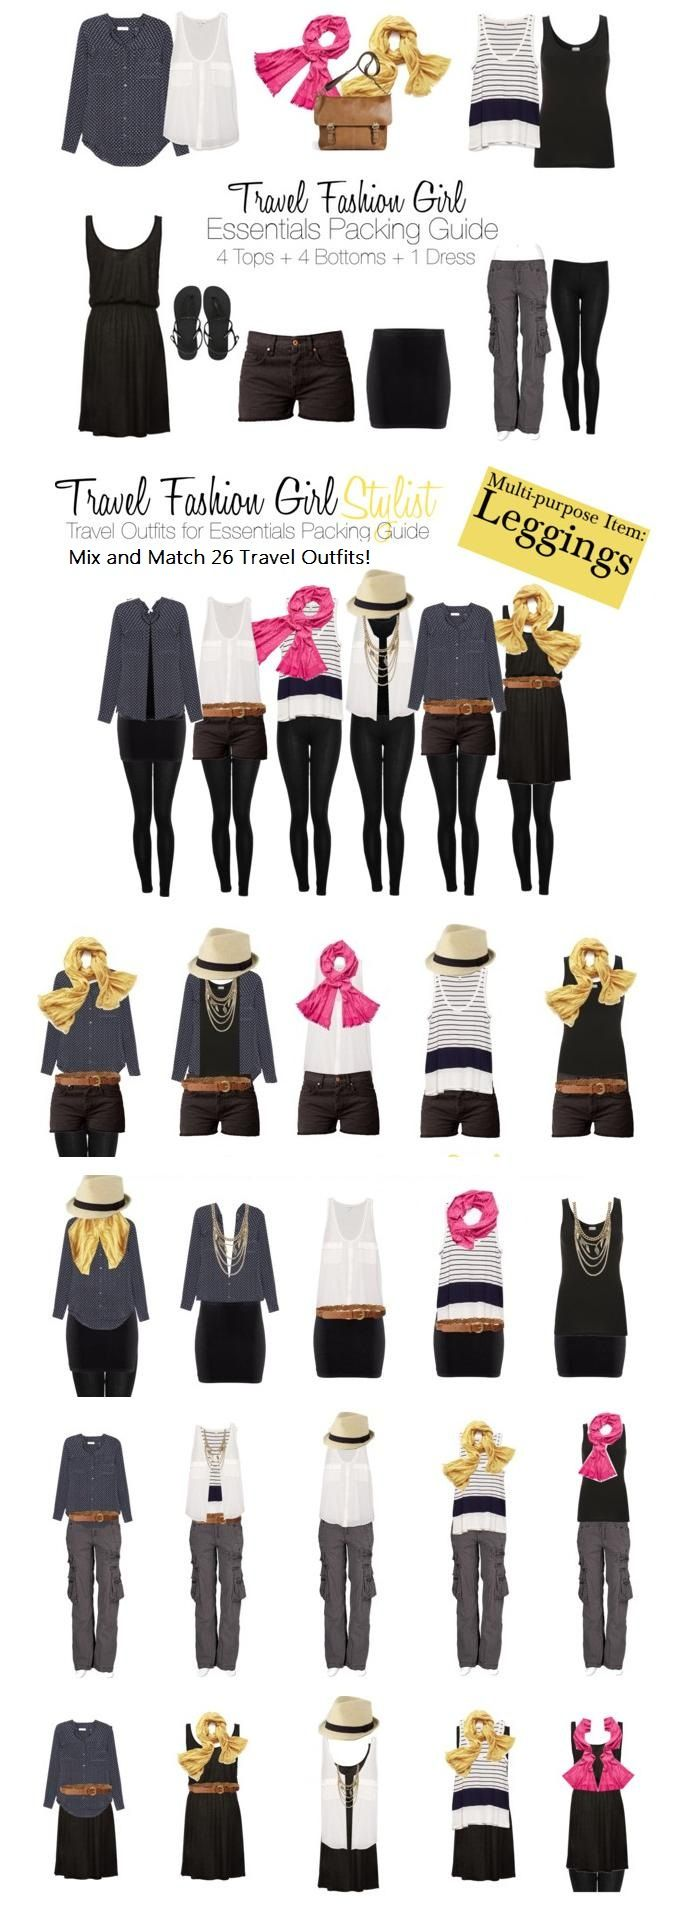 Mix and Match 26 Travel Outfits with 8 Pieces of Clothing ...